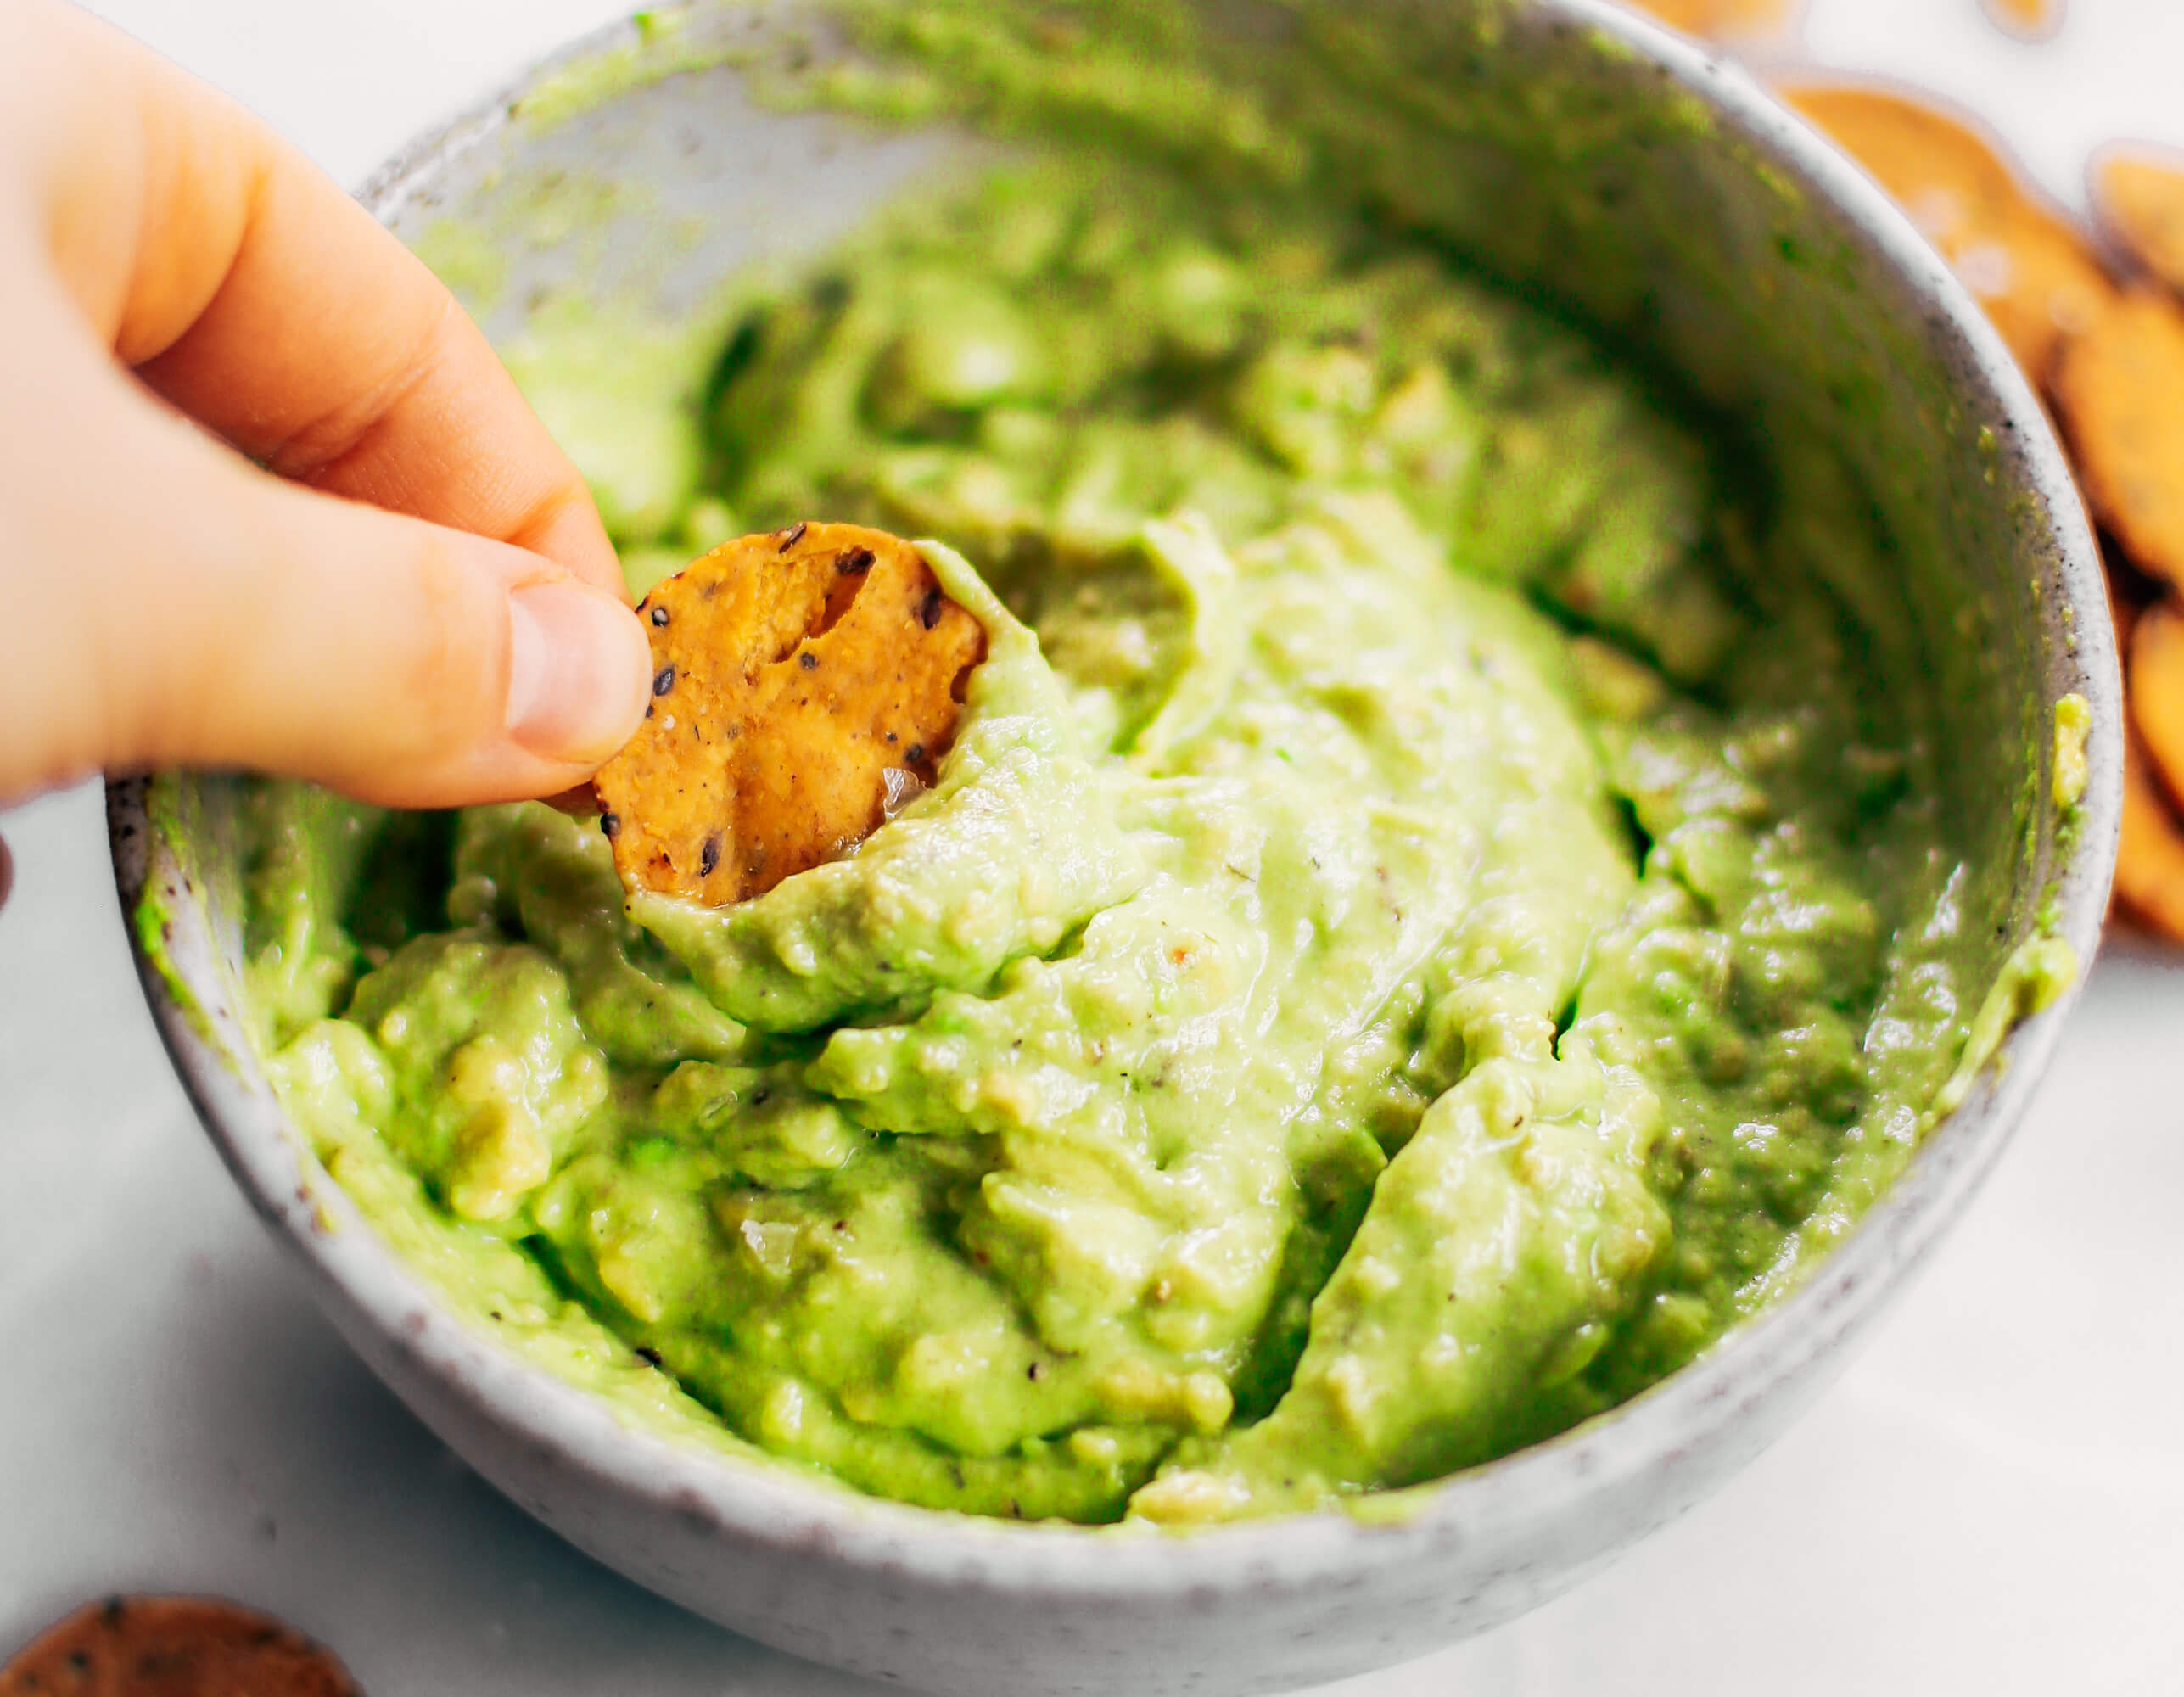 Avocado lime dip ready in two minutes! Vegan avocado guacamole dip, perfect dip for veggie sticks, crackers, and chips. Easy paleo and whole30 side dish. This fresh and tasty avocado dip is a life-changing easy meal prep hack- add it to any dish to upgrade your meal. #avocado #paleo #whole30 #vegan #recipes